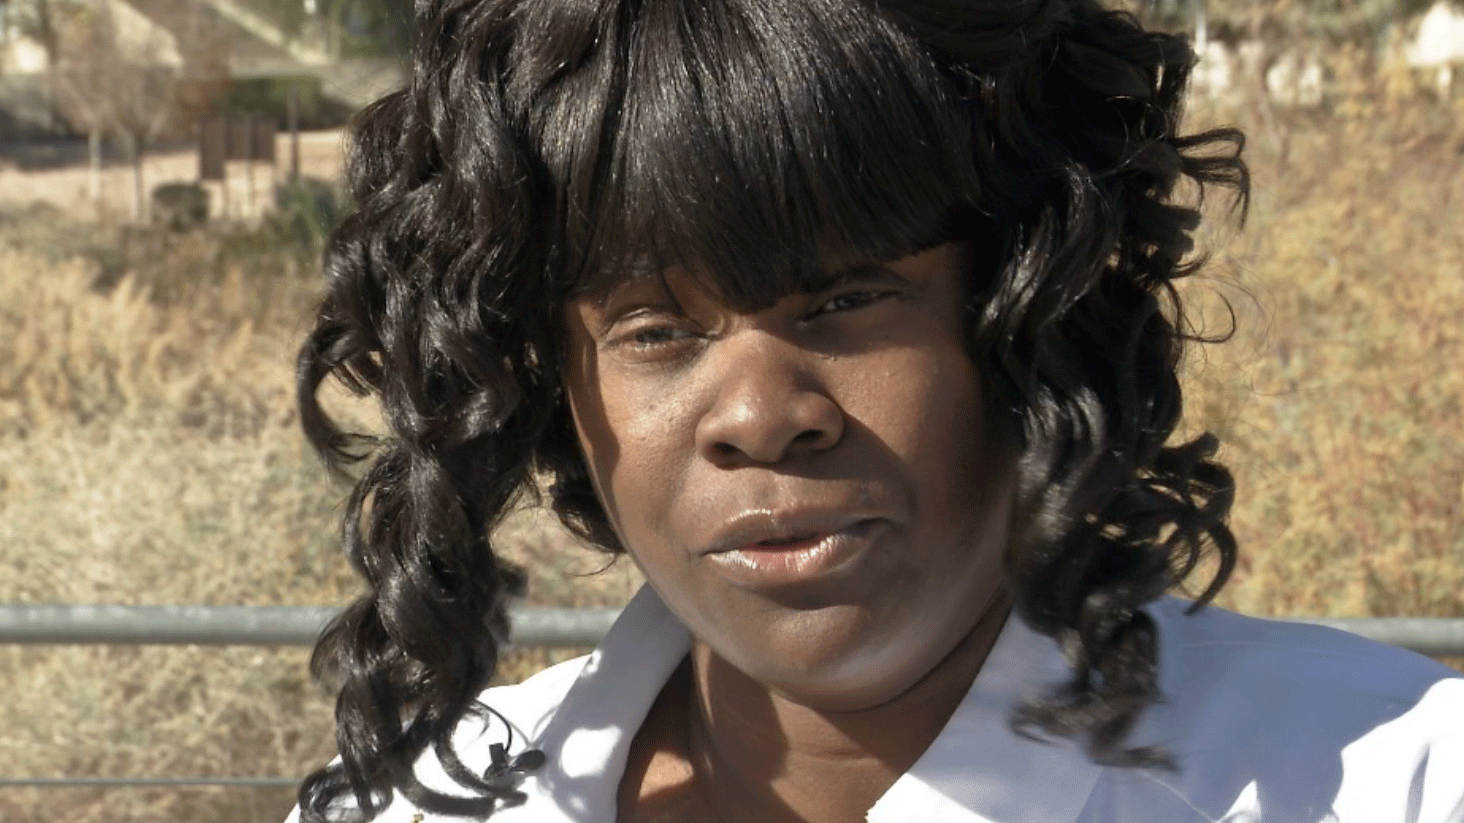 Aisha Page said she believed she was singled out at a local beauty supply store. (Kathleen Jacob/FOX5)